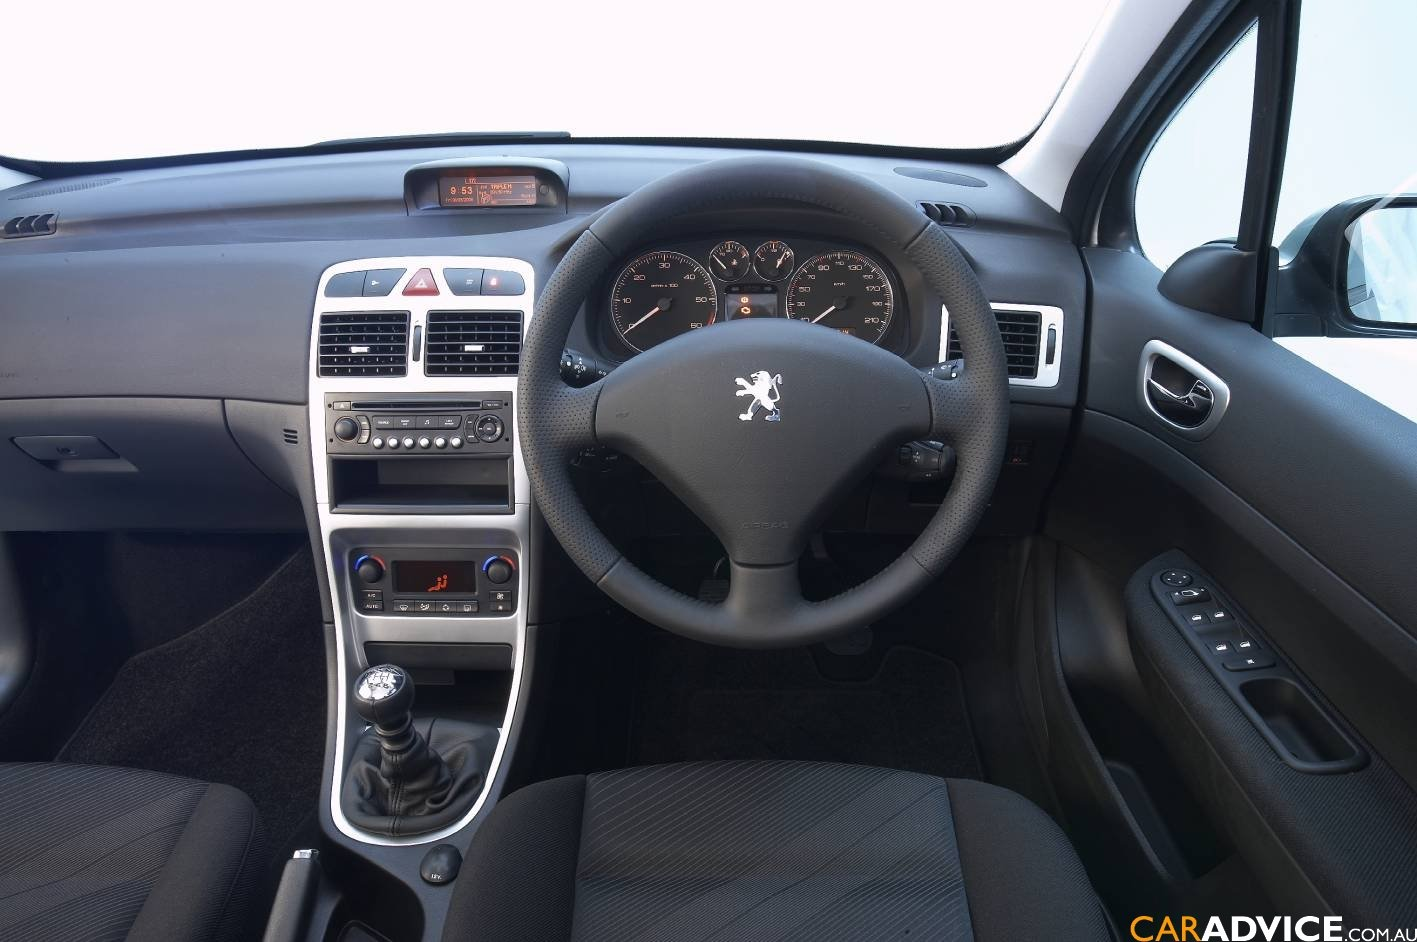 2007 Peugeot 307 Review Photos Caradvice